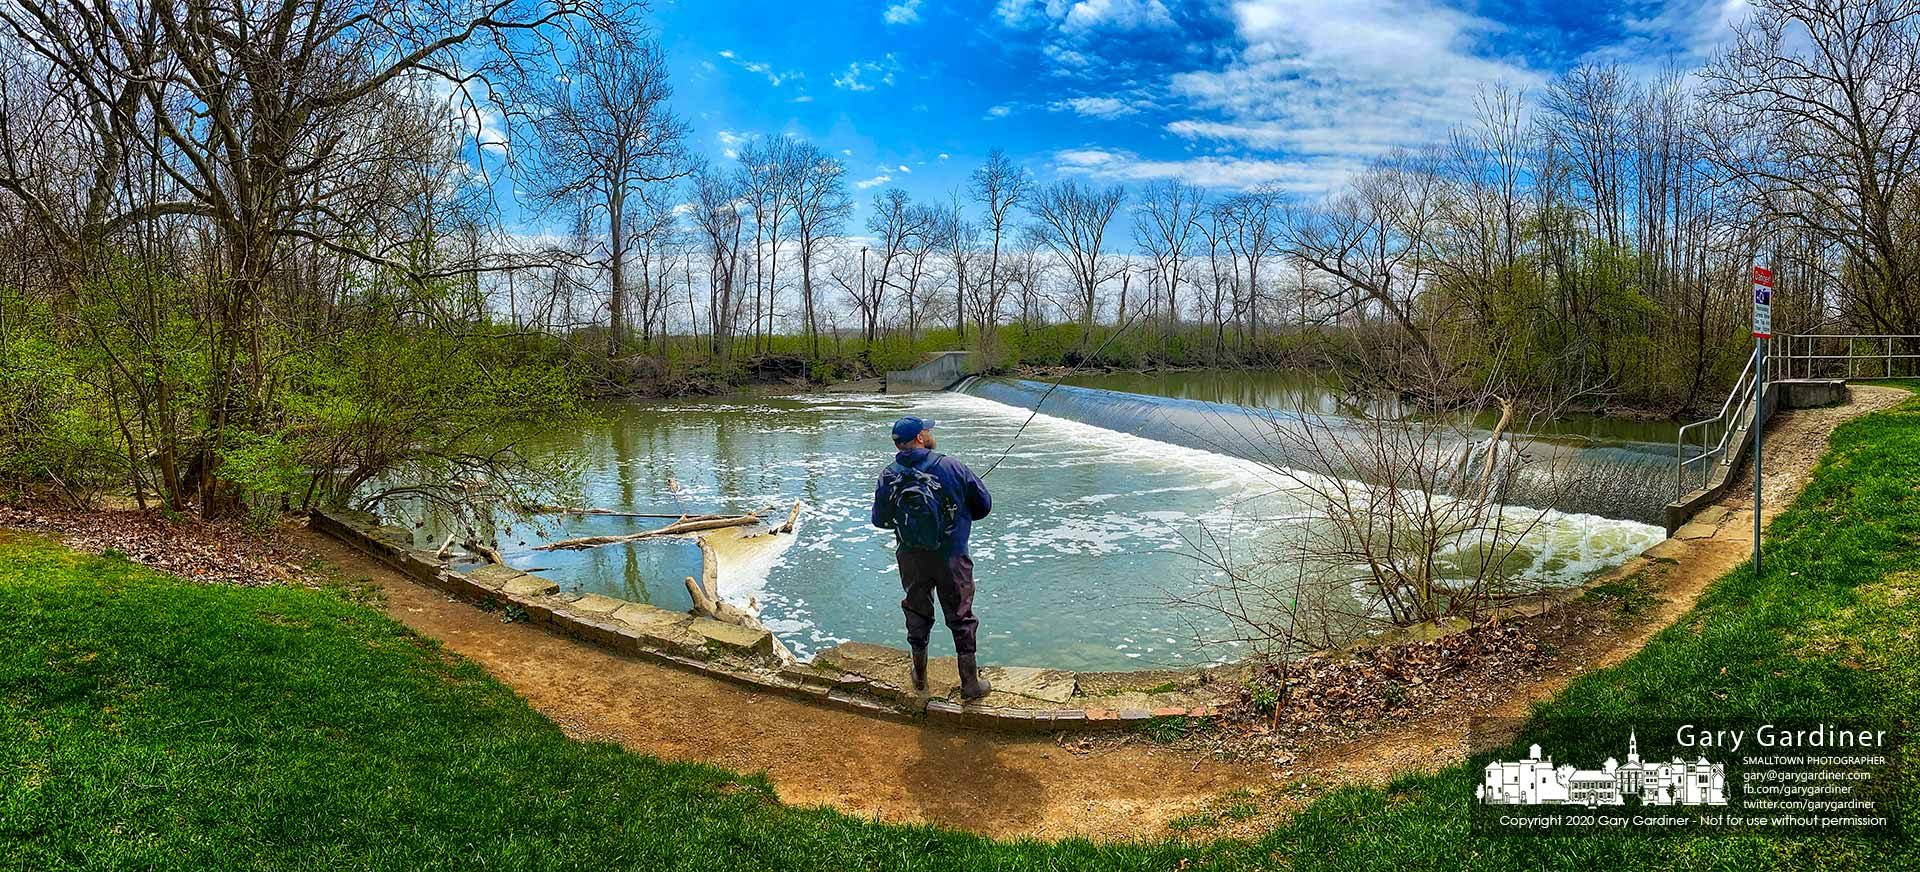 A lone fisherman tests the turbulent waters on Alum Creek just below the low-head dam on West Main Street. My Final Photo for April 11, 2020.